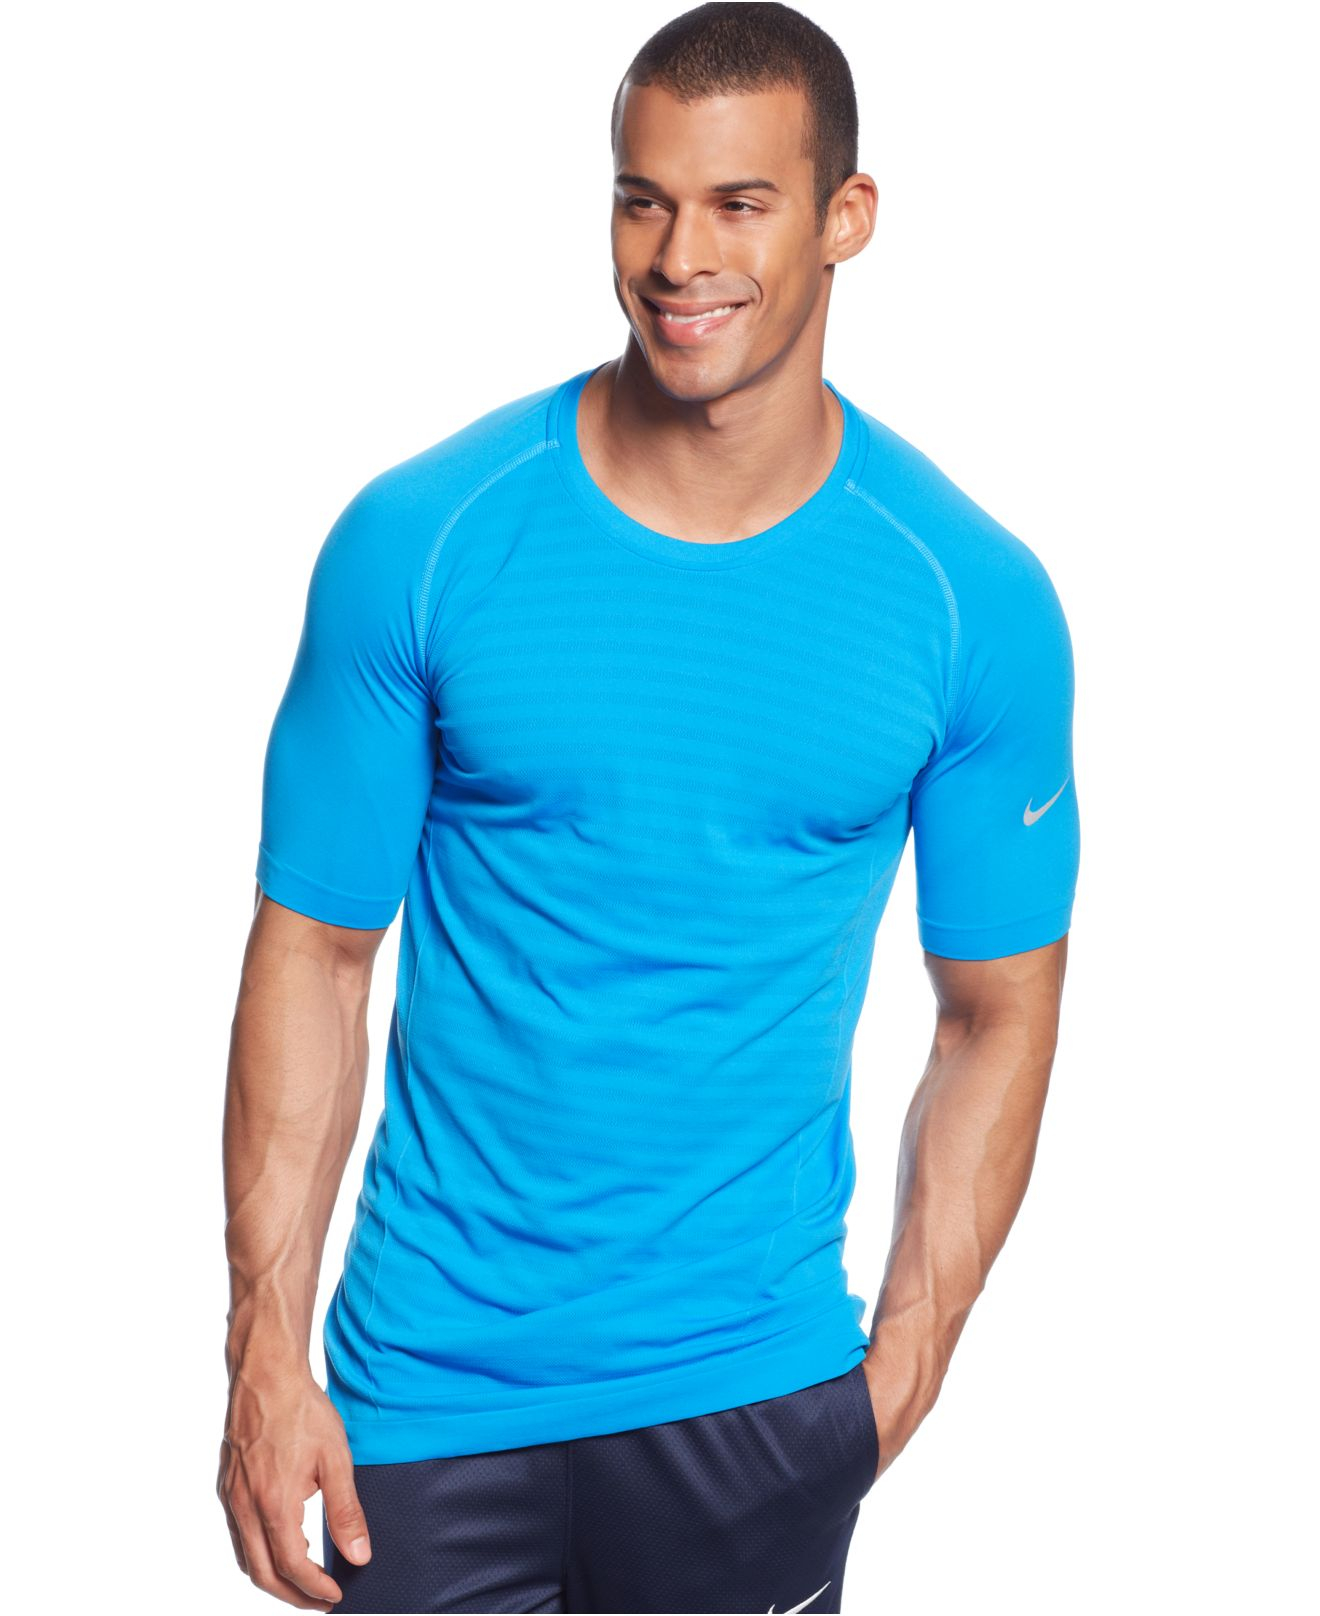 Nike miler dri fit performance t shirt in blue for men for Custom dri fit t shirts